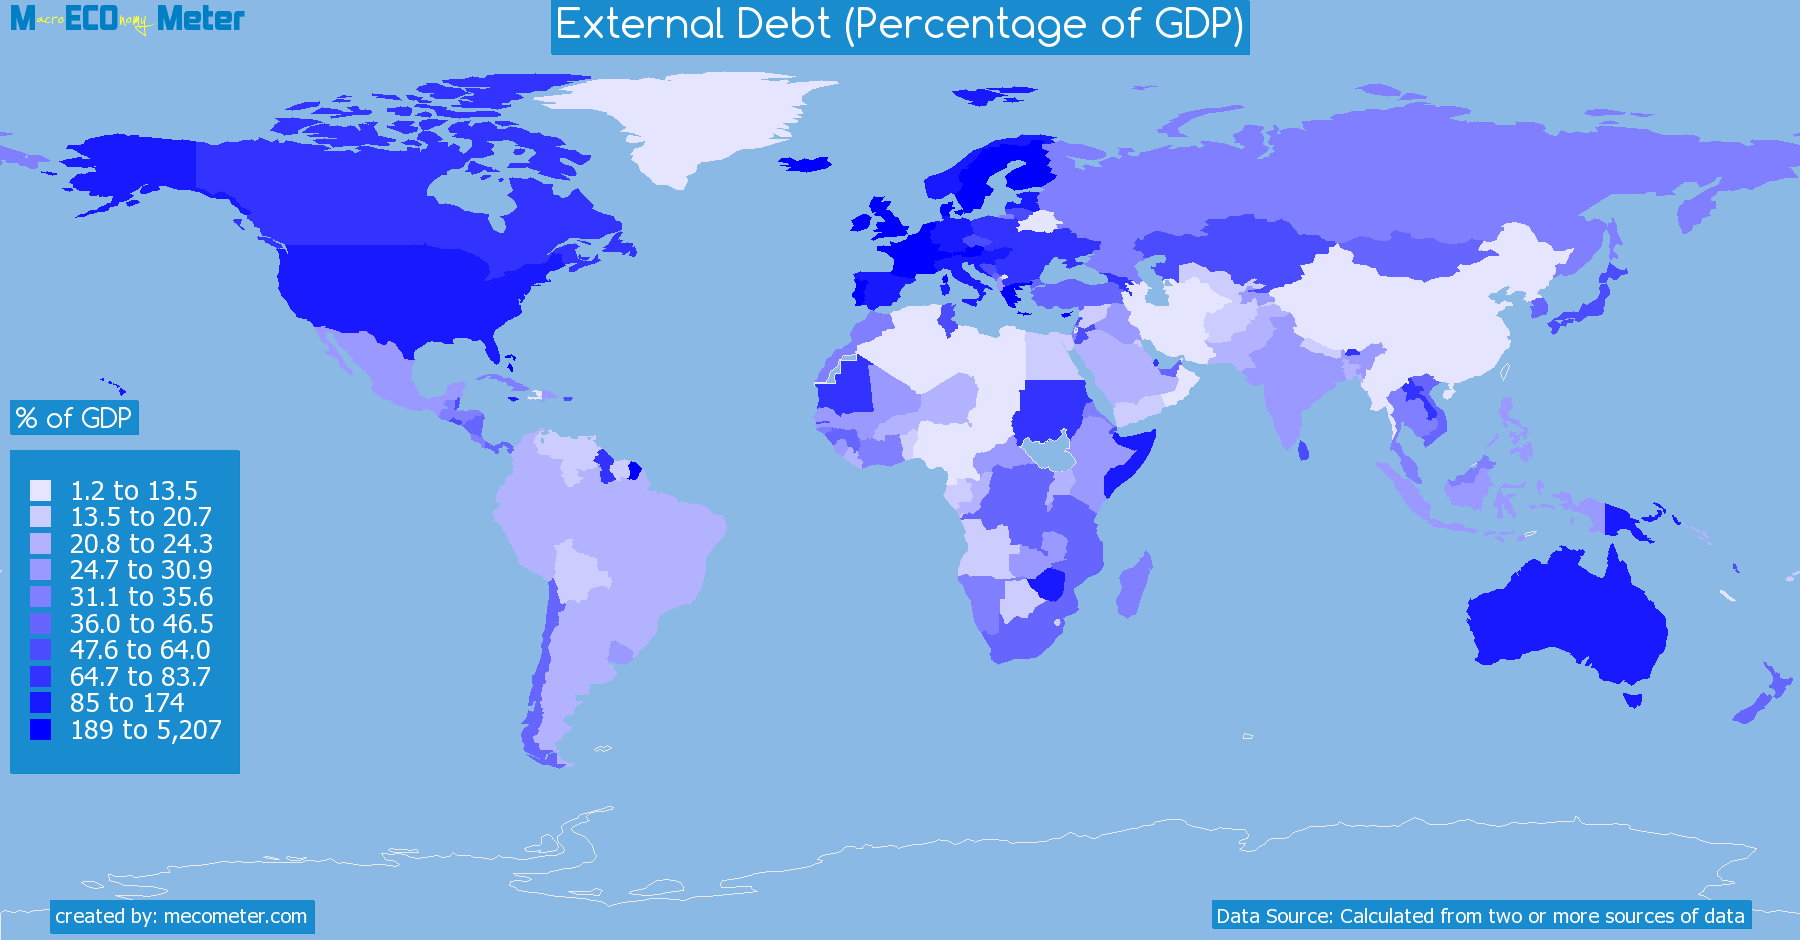 Worldmap of all countries colored to reflect the values of External Debt (Percentage of GDP)